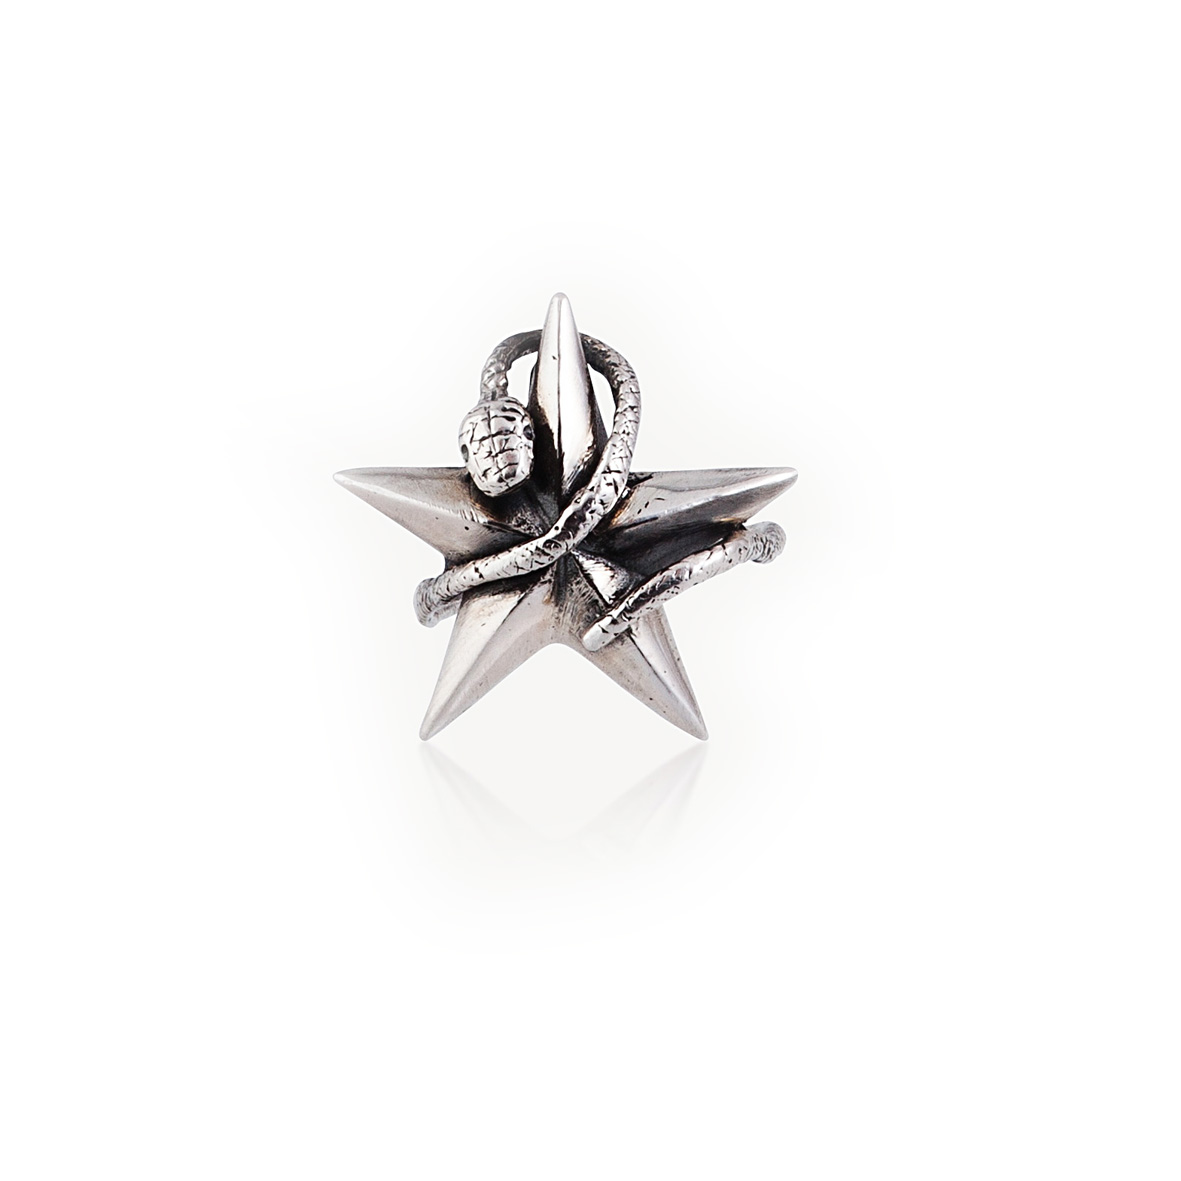 Momocreatura snake star ring.jpg